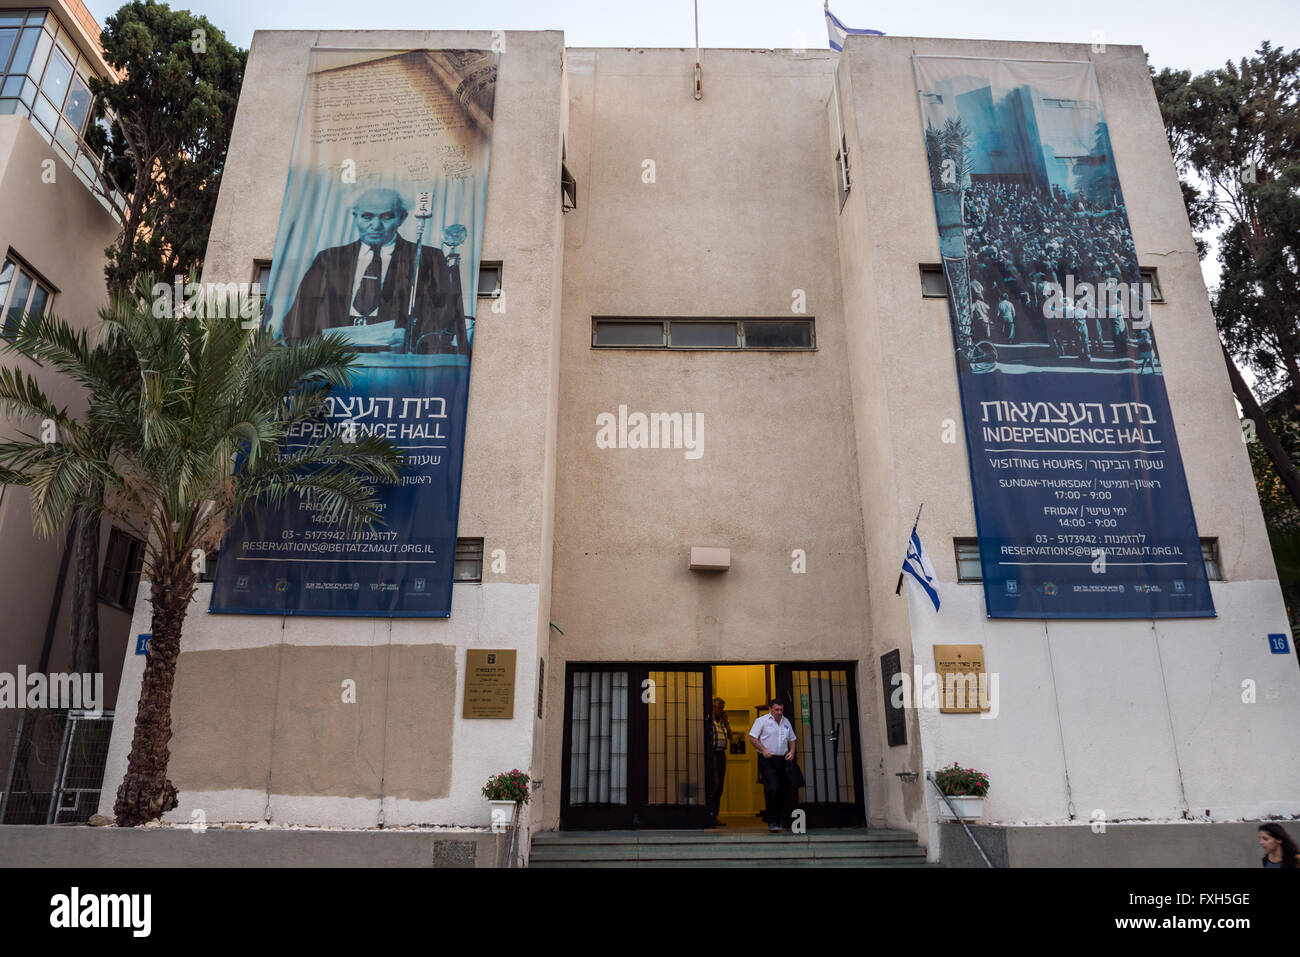 Independence Hall (also called Dizengoff House) at Rothschild Boulevard in Tel Aviv city, Israel - Stock Image